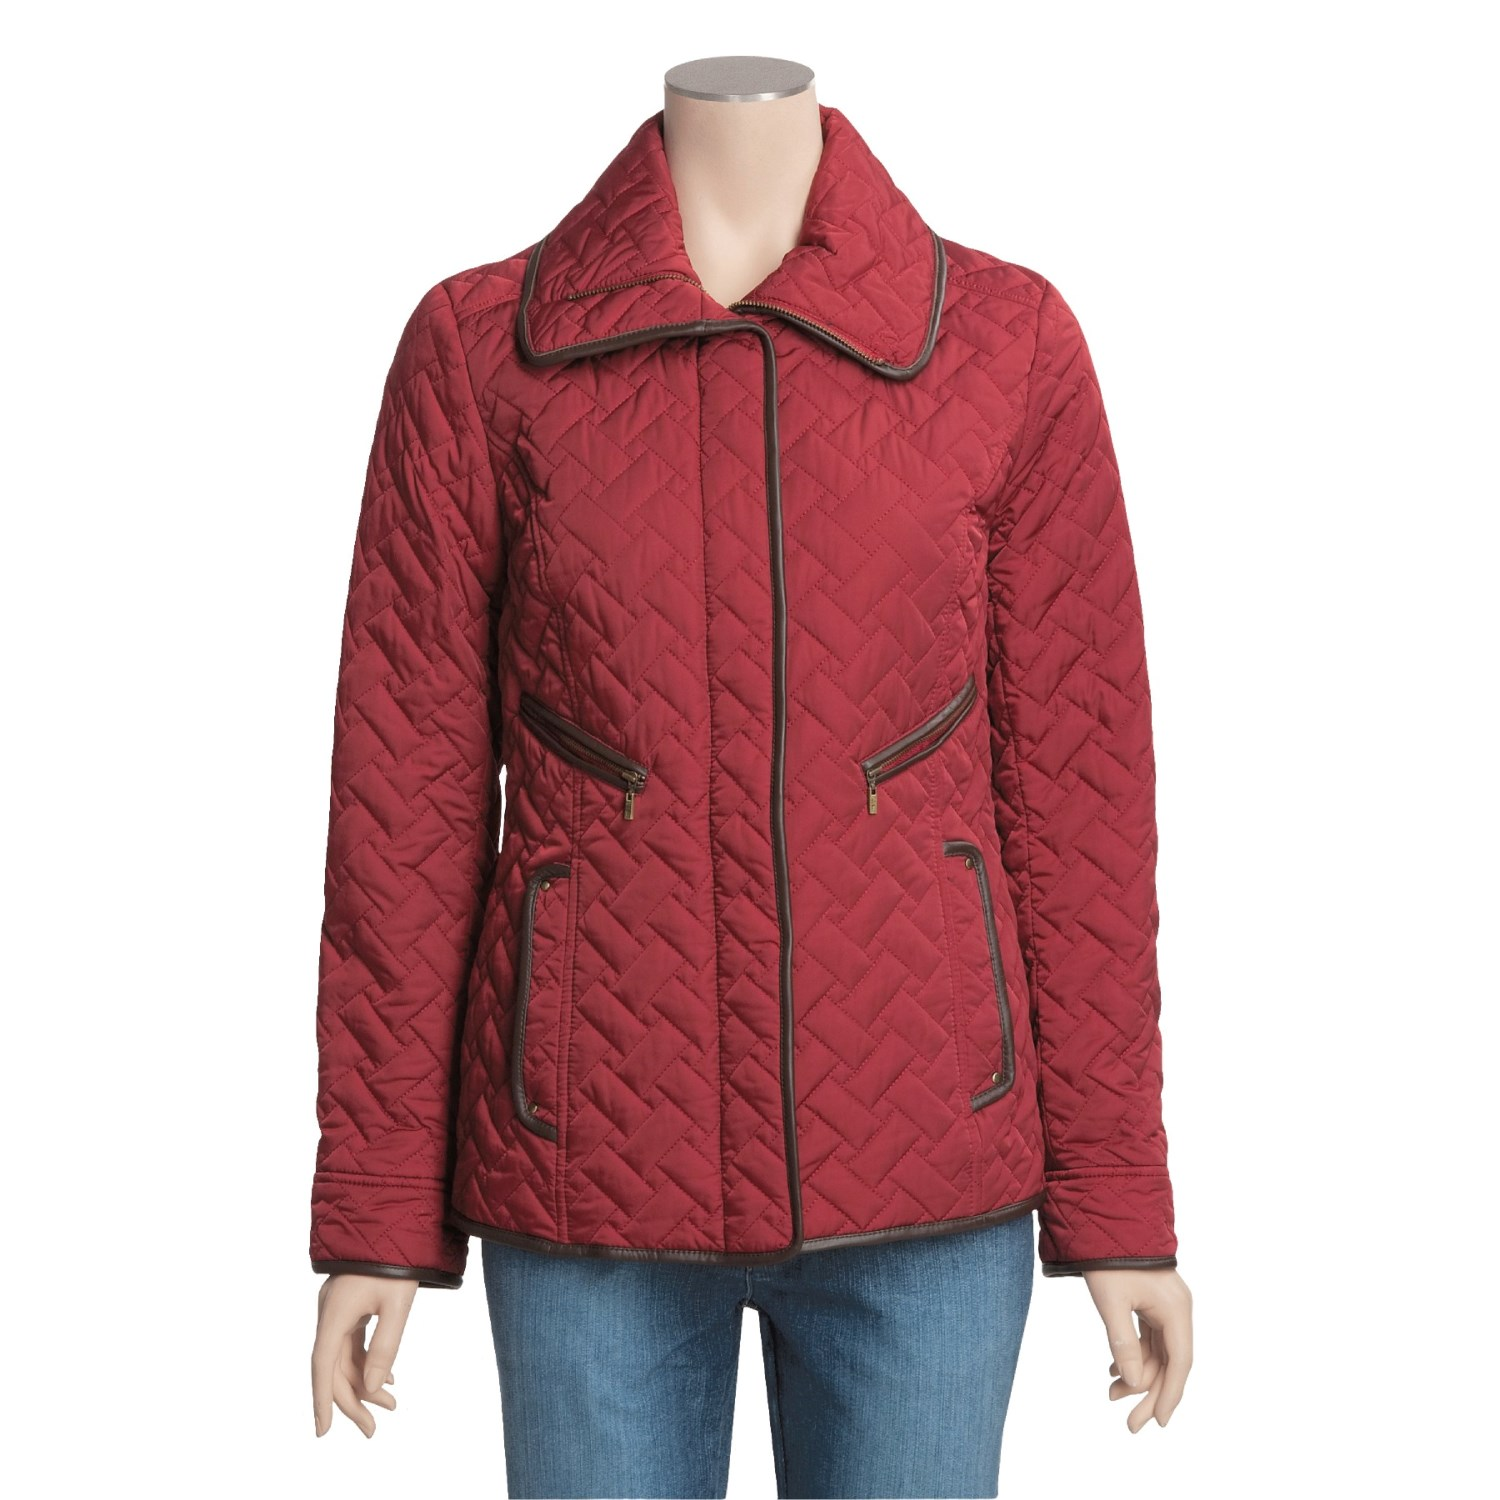 Barn jacket for women--this does the job! I have had a similar jacket for years and it has gradually been wearing outto the point that I waited eagerly last fall for the catalogue of /5(10).